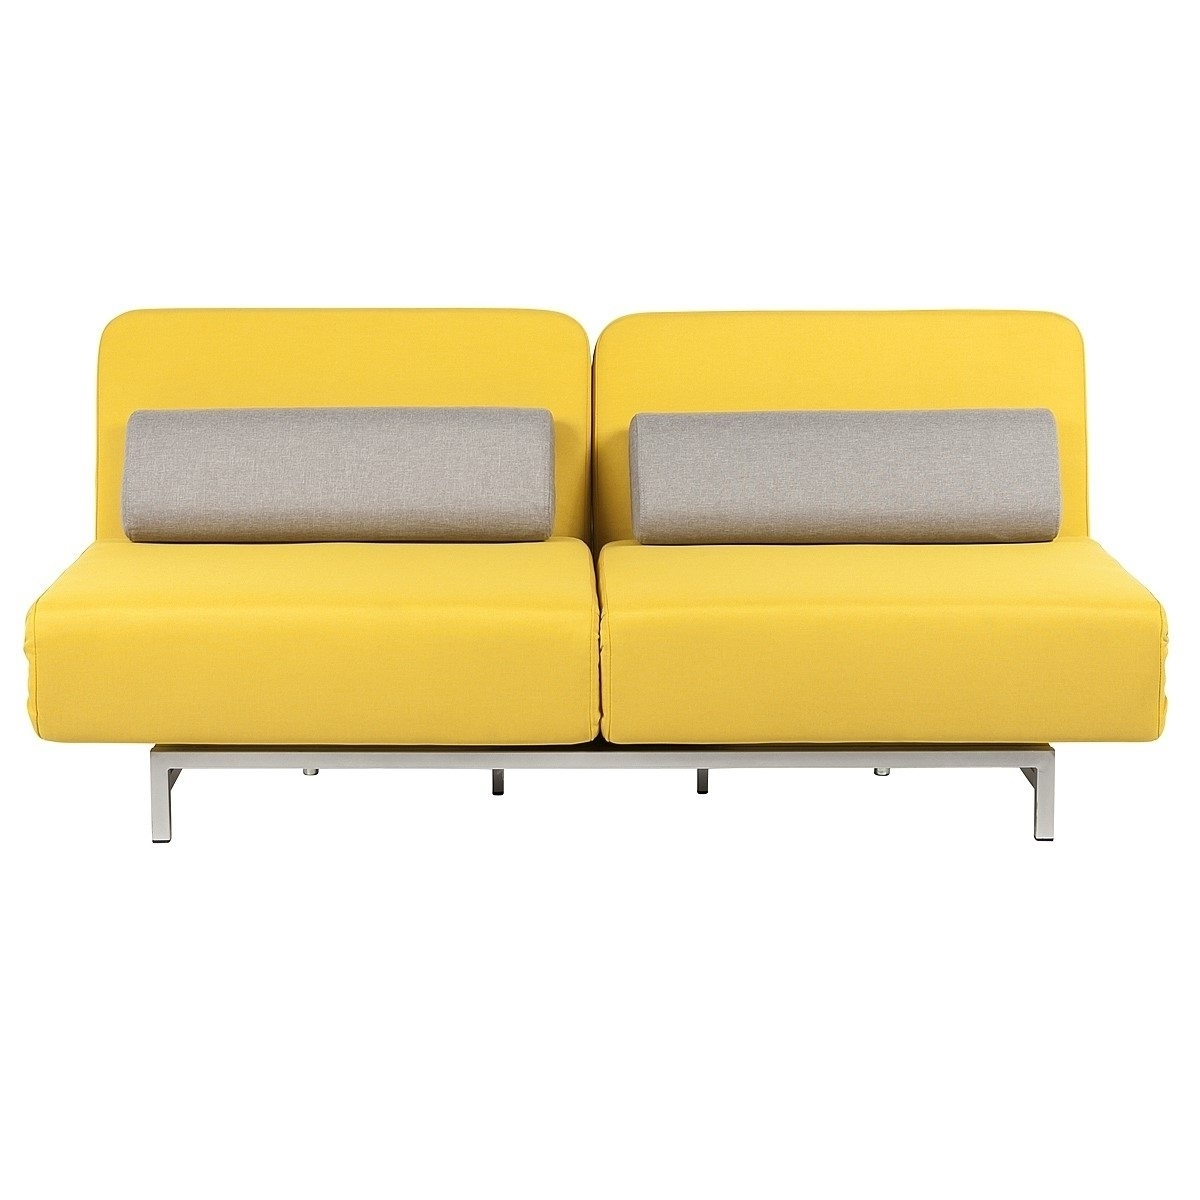 Fashionable Nood Swizzle Sofa Bed Review (View 12 of 15)